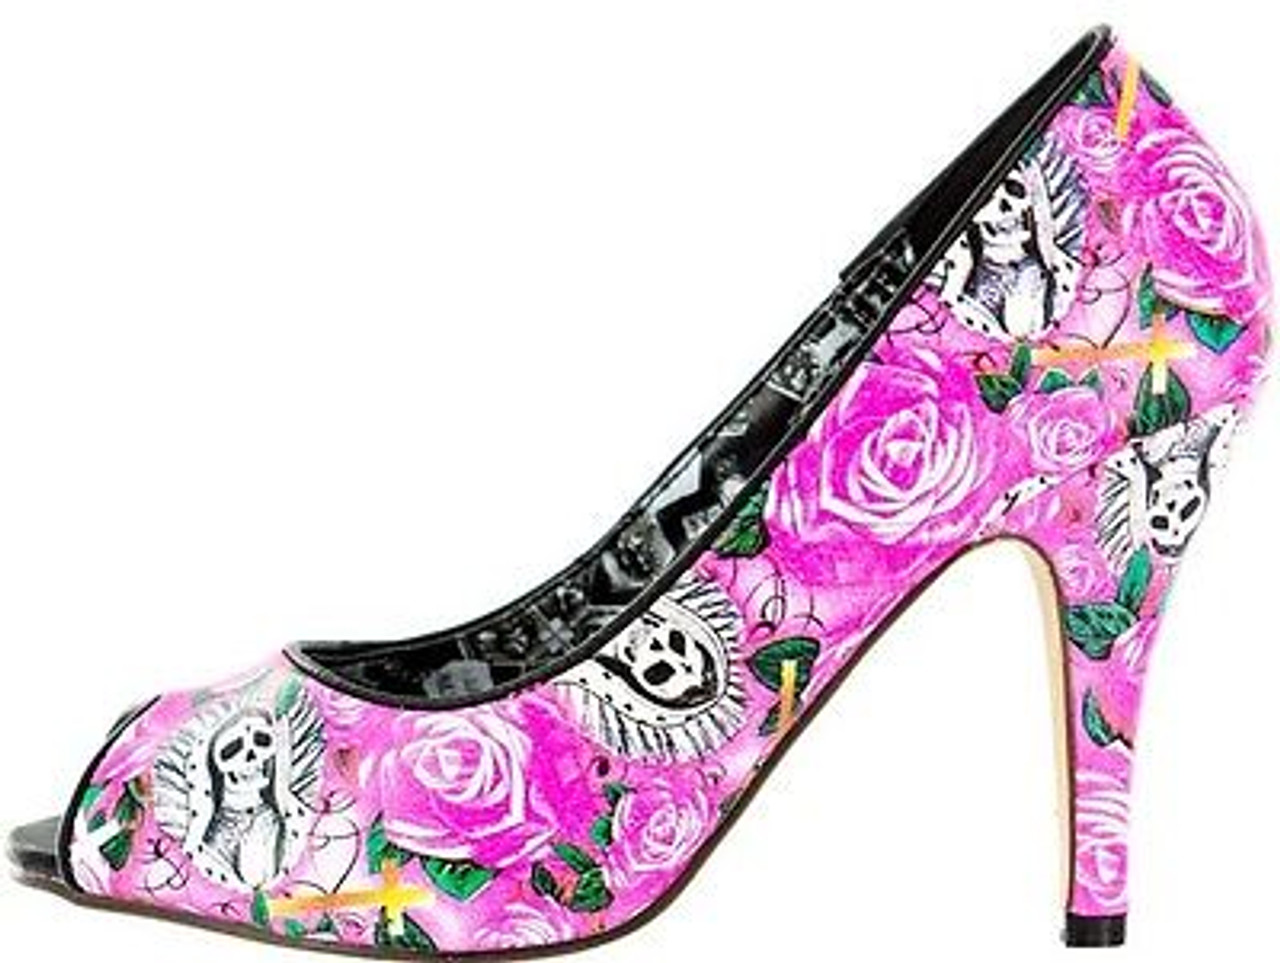 b49cb17ef06 IRON FIST BEAUTIFUL SINNER SKELETON SKULL PINK PLATFORM HEELS SHOES SIZE  7-10